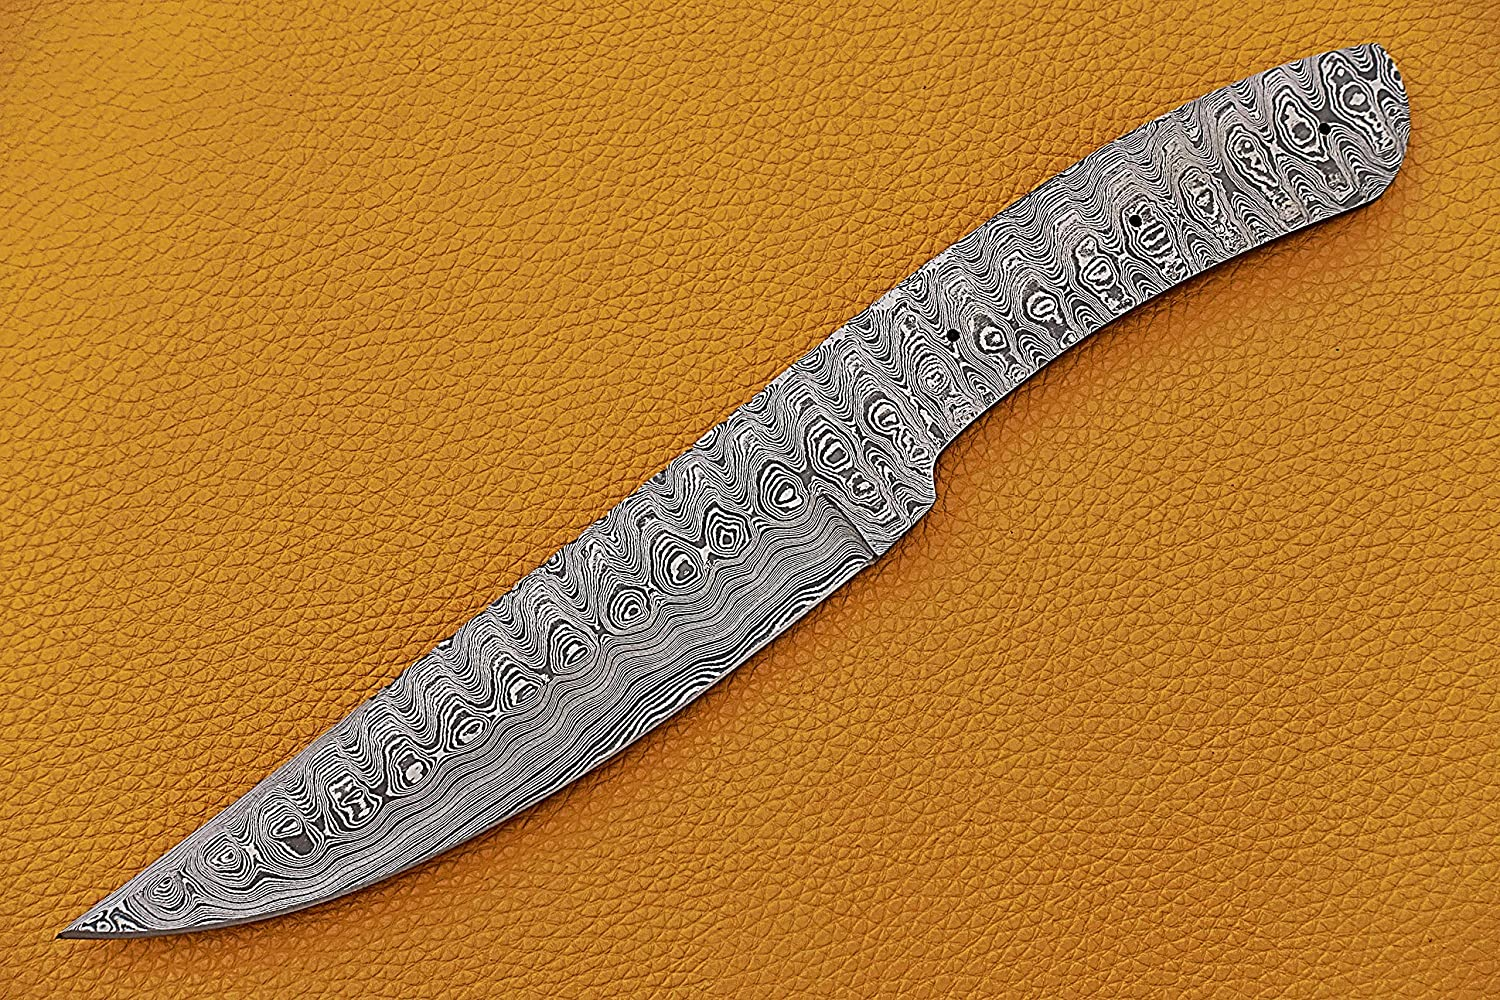 Knife Making Damascus Steel Blank Blade inches Award-winning store Rapid rise 11 For Hand Long